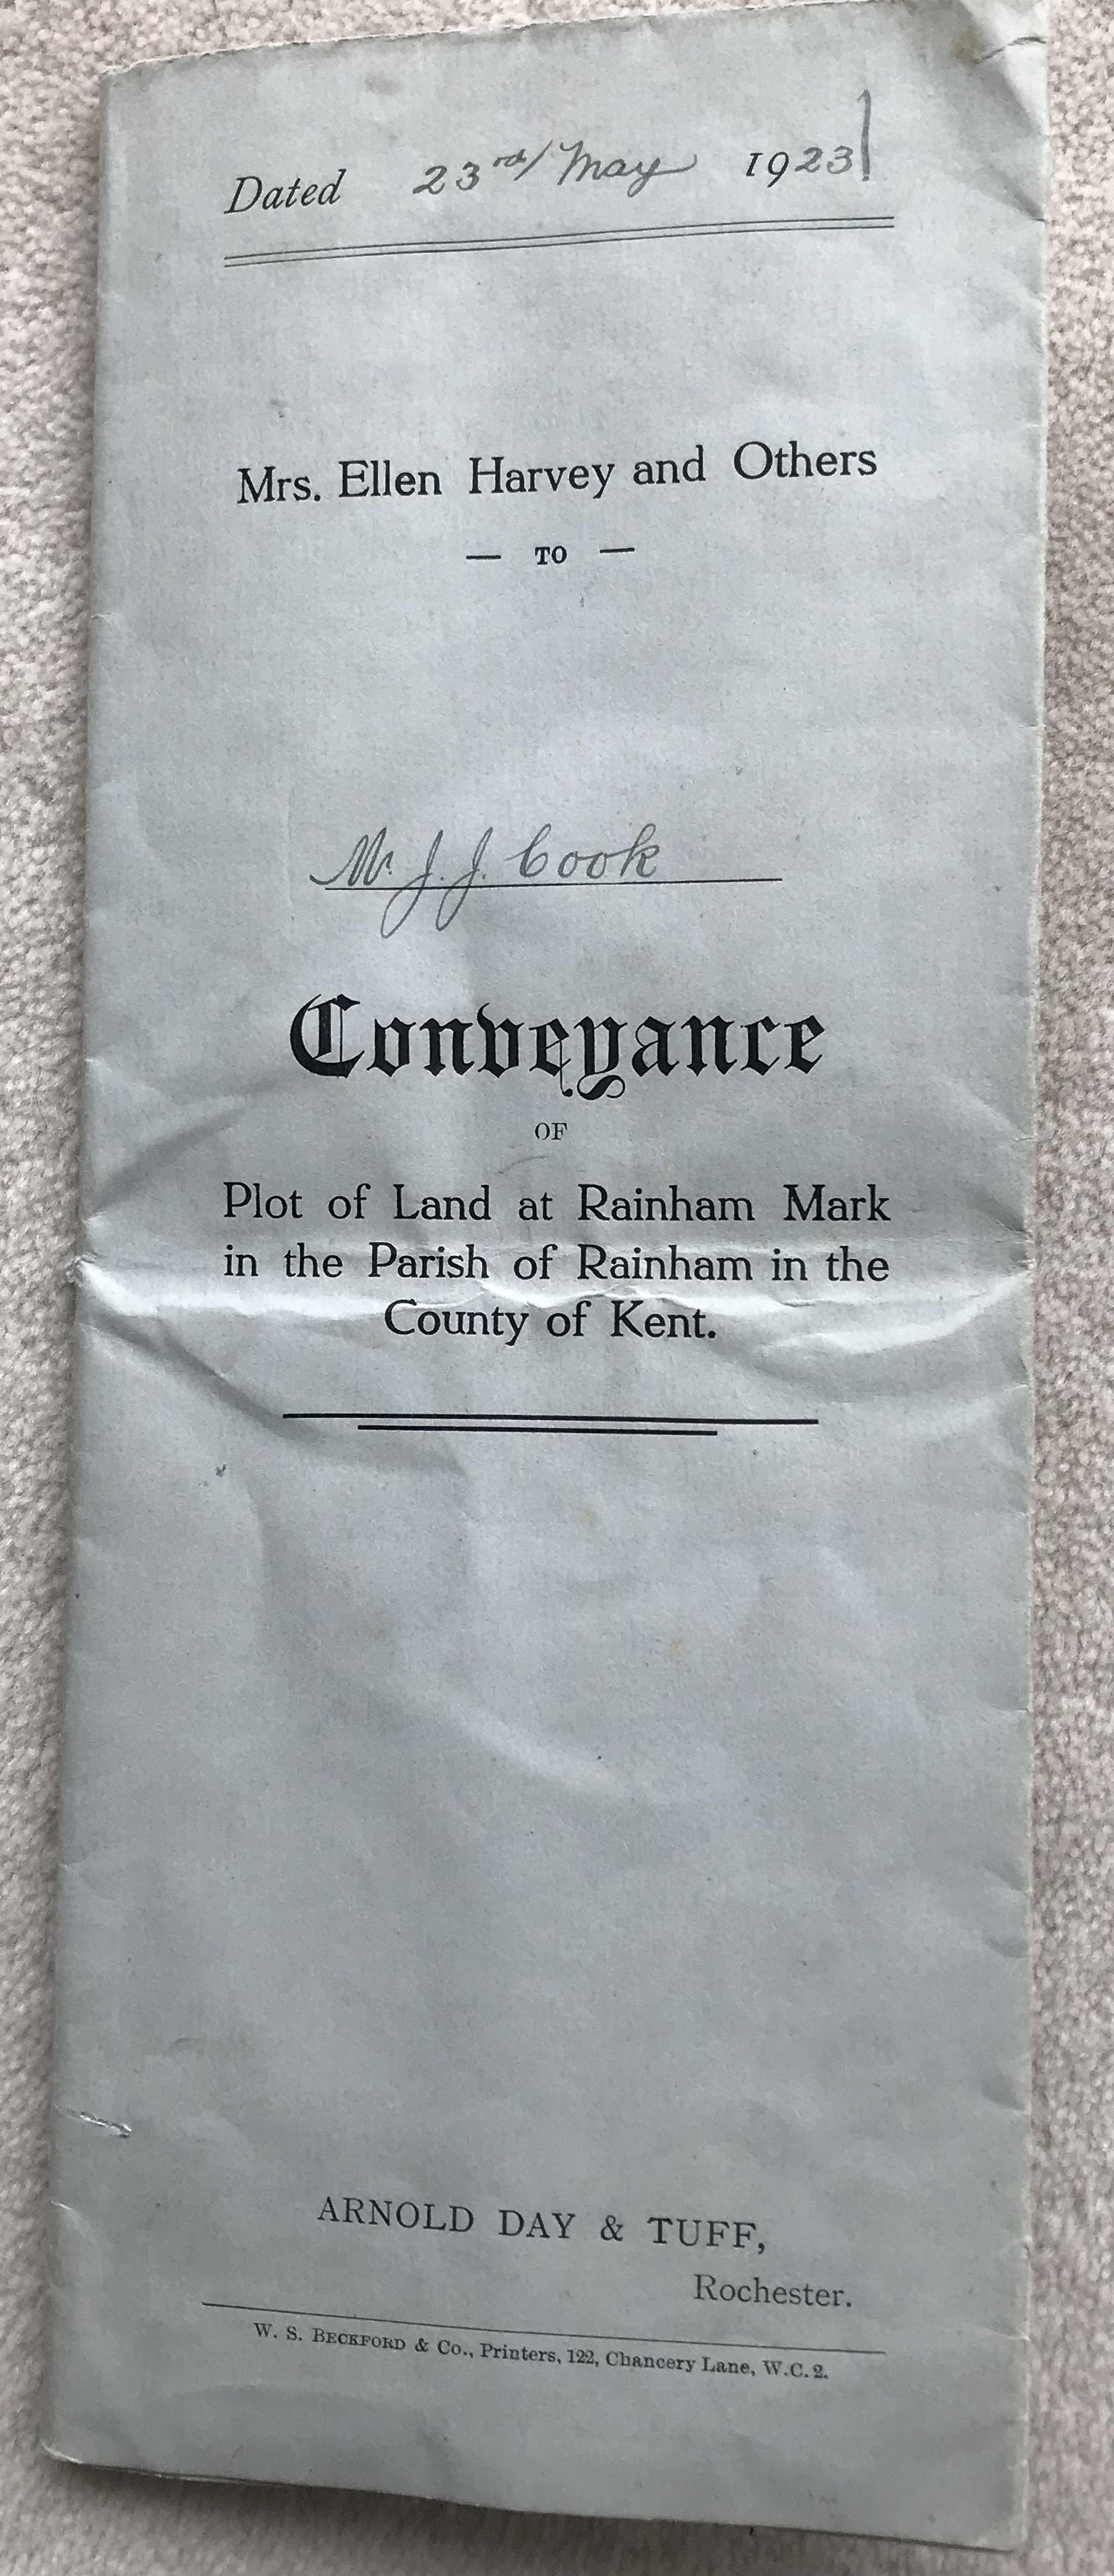 Conveyance document Marshall Road 1923